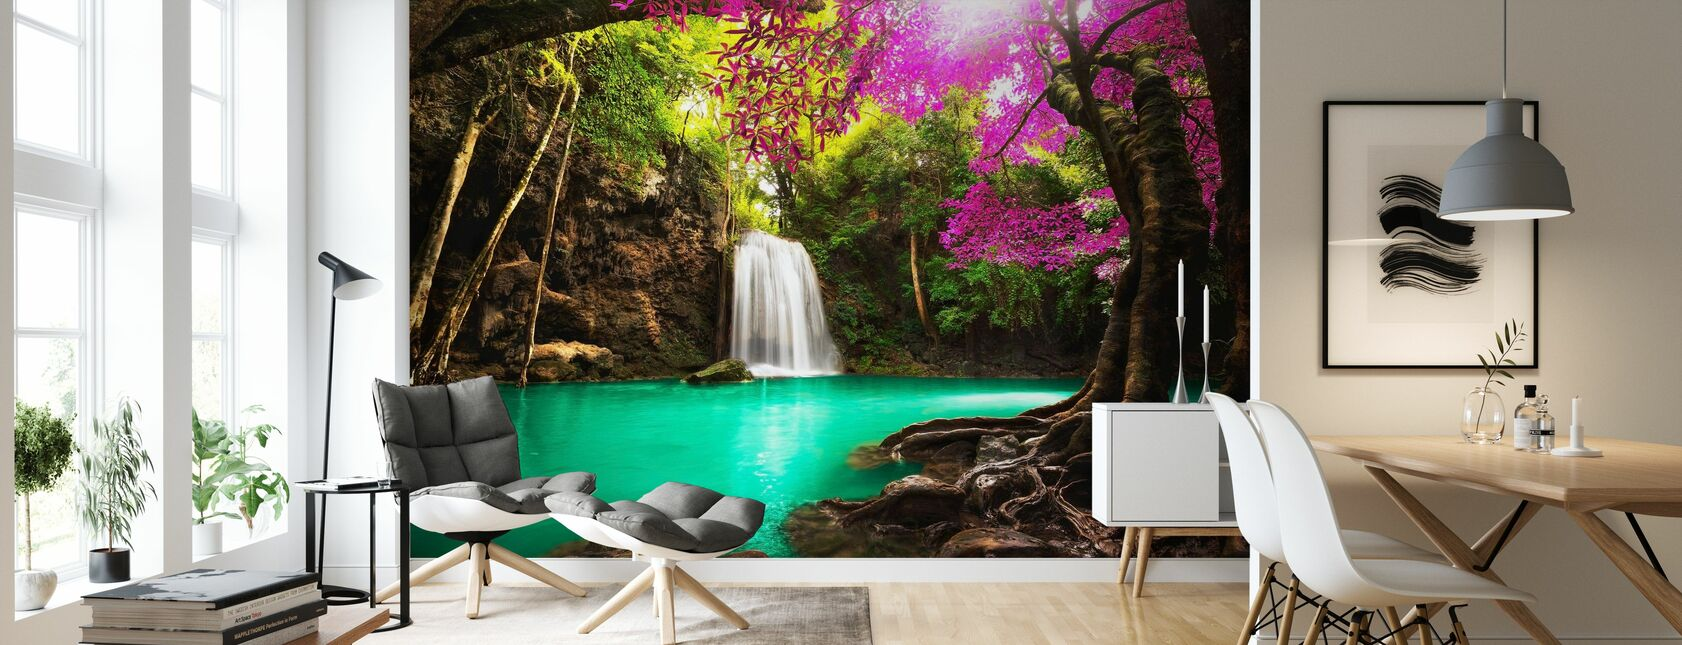 Waterfall in Autumn Forest - Wallpaper - Living Room